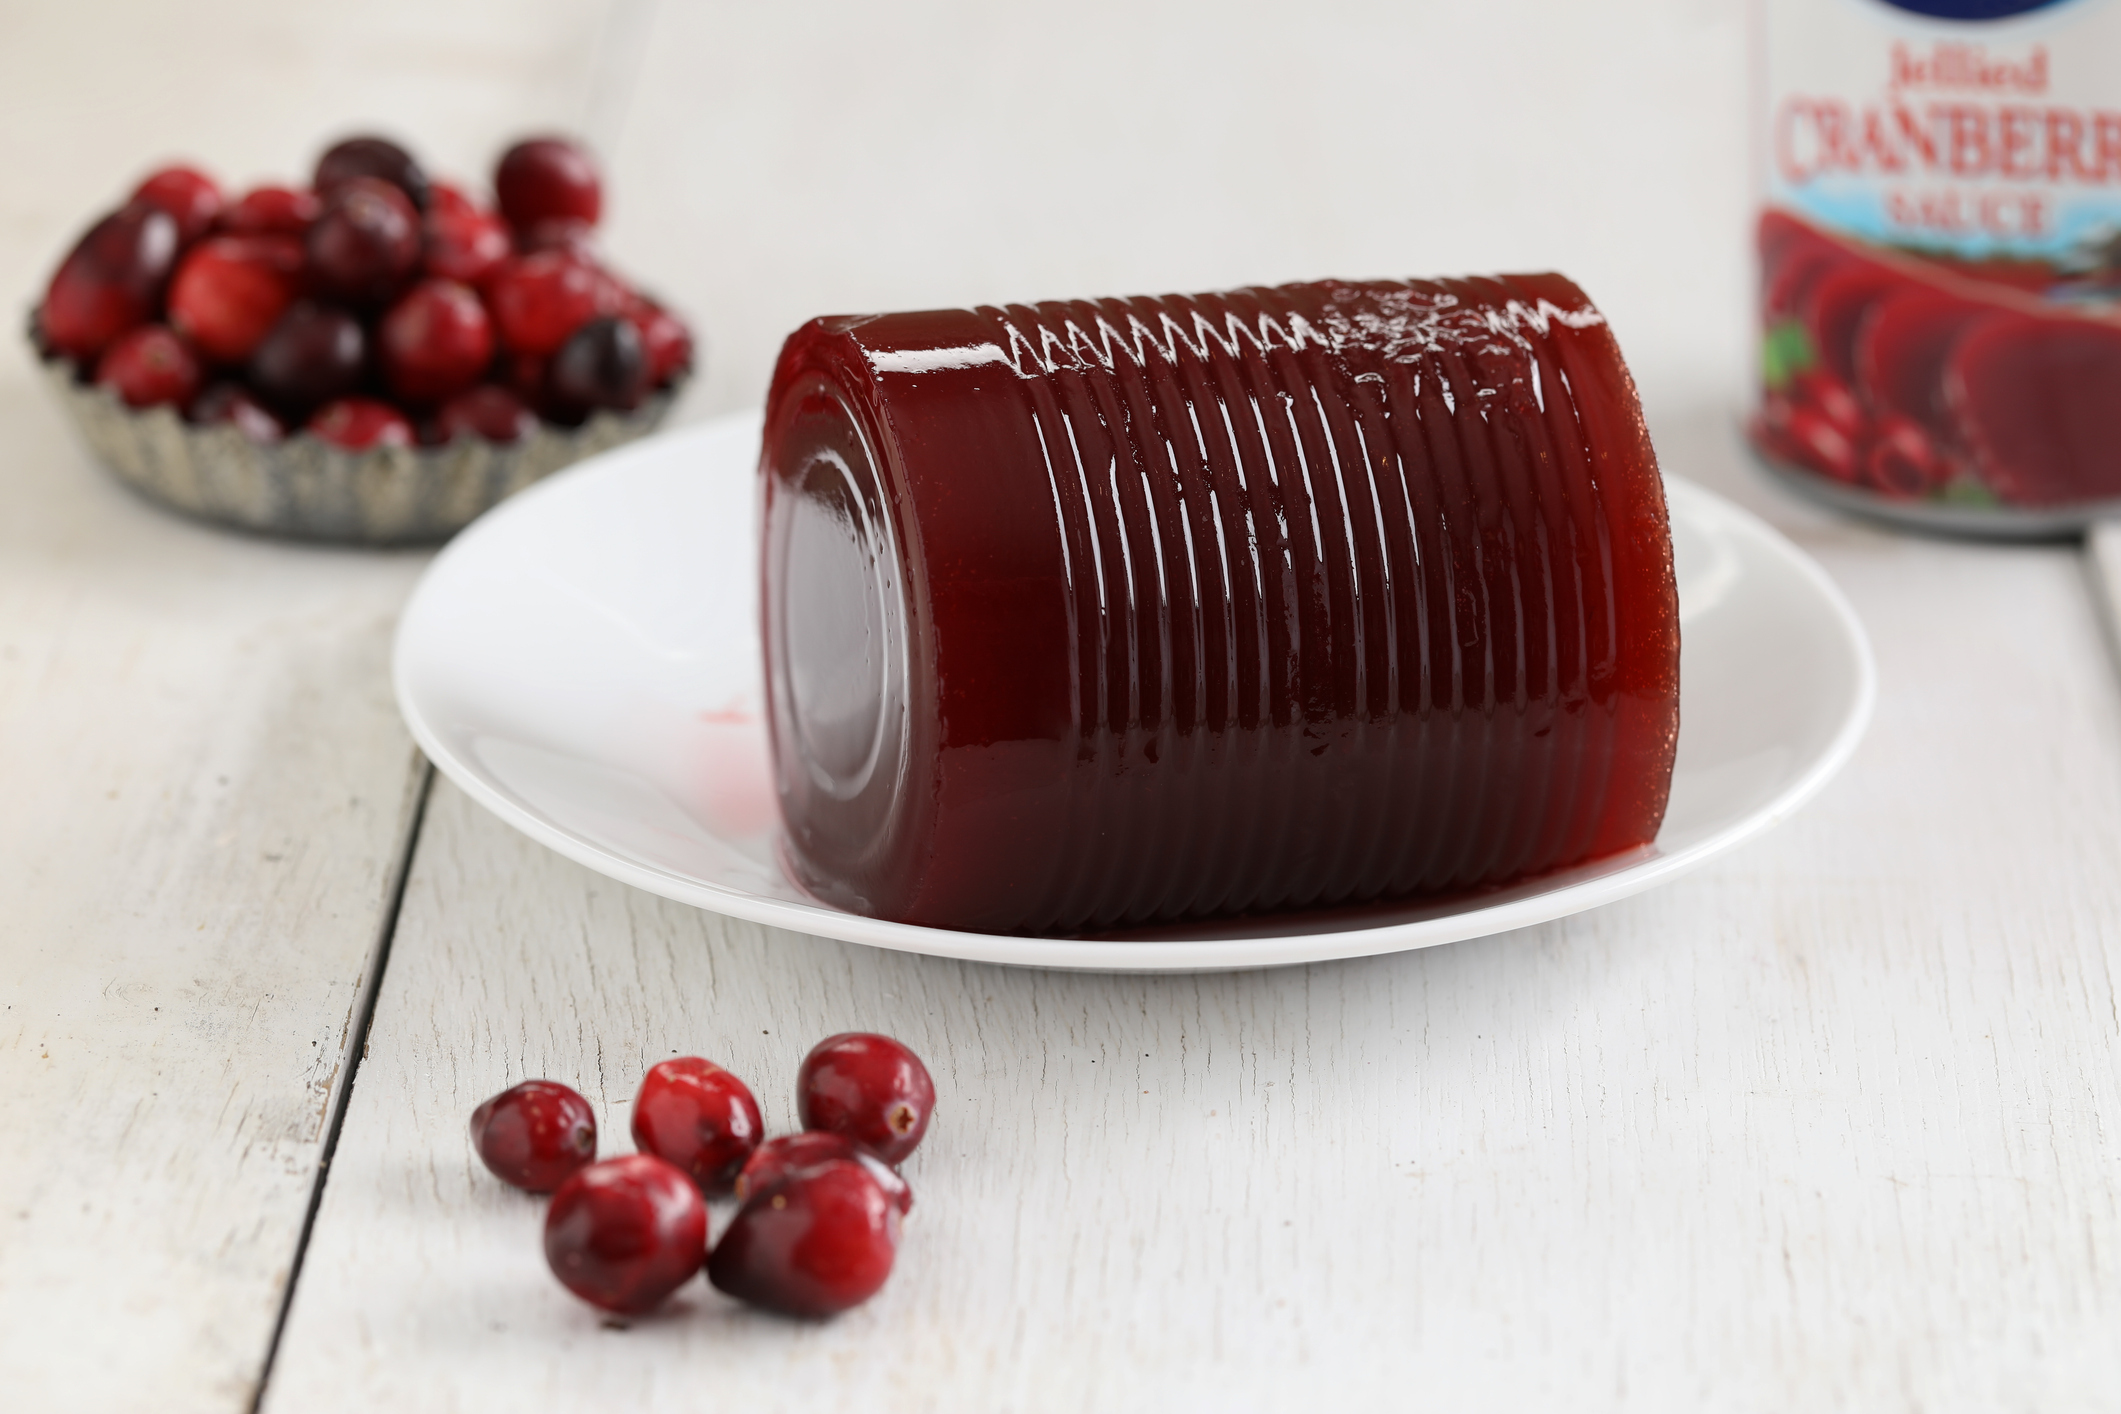 3. Canned Cranberry Sauce